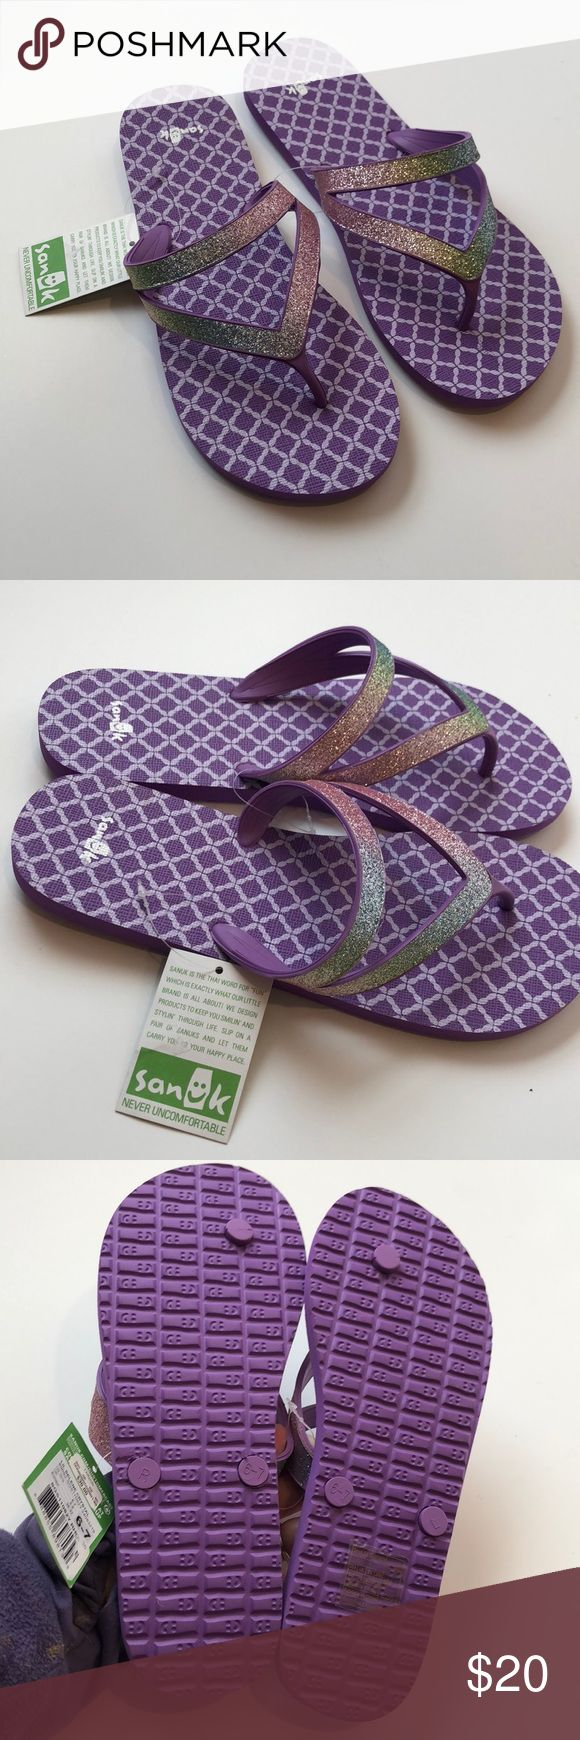 NWT Sanuk purple flip flops size 6-7 Lil Selene Crystal flip flops from Sanuk. NEW with tags attached.  Size 6-7. Sanuk Shoes Sandals